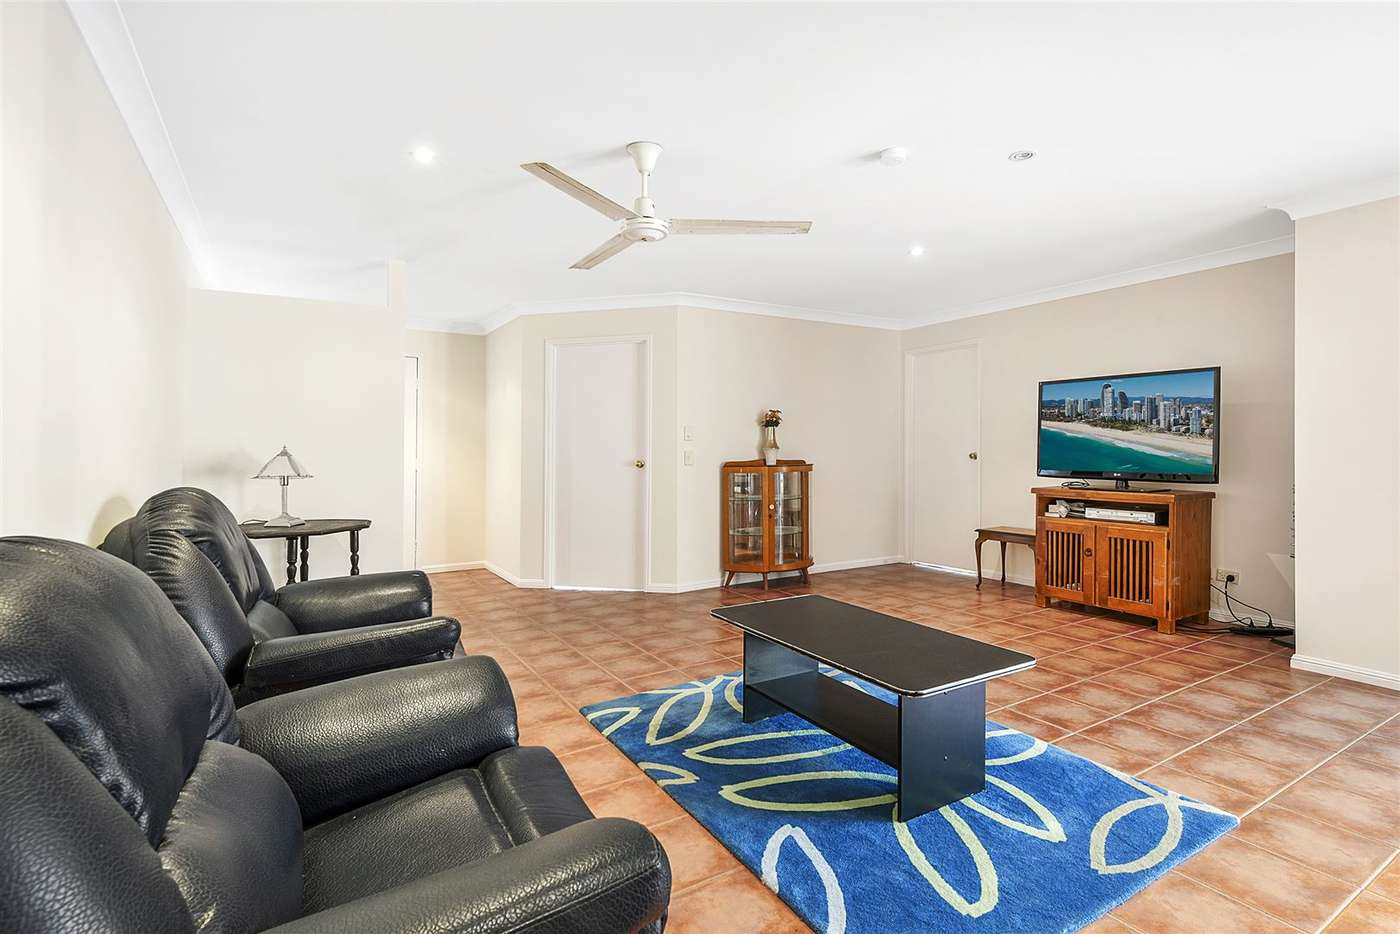 Main view of Homely house listing, 16 Jamieson Drive, Parkwood QLD 4214